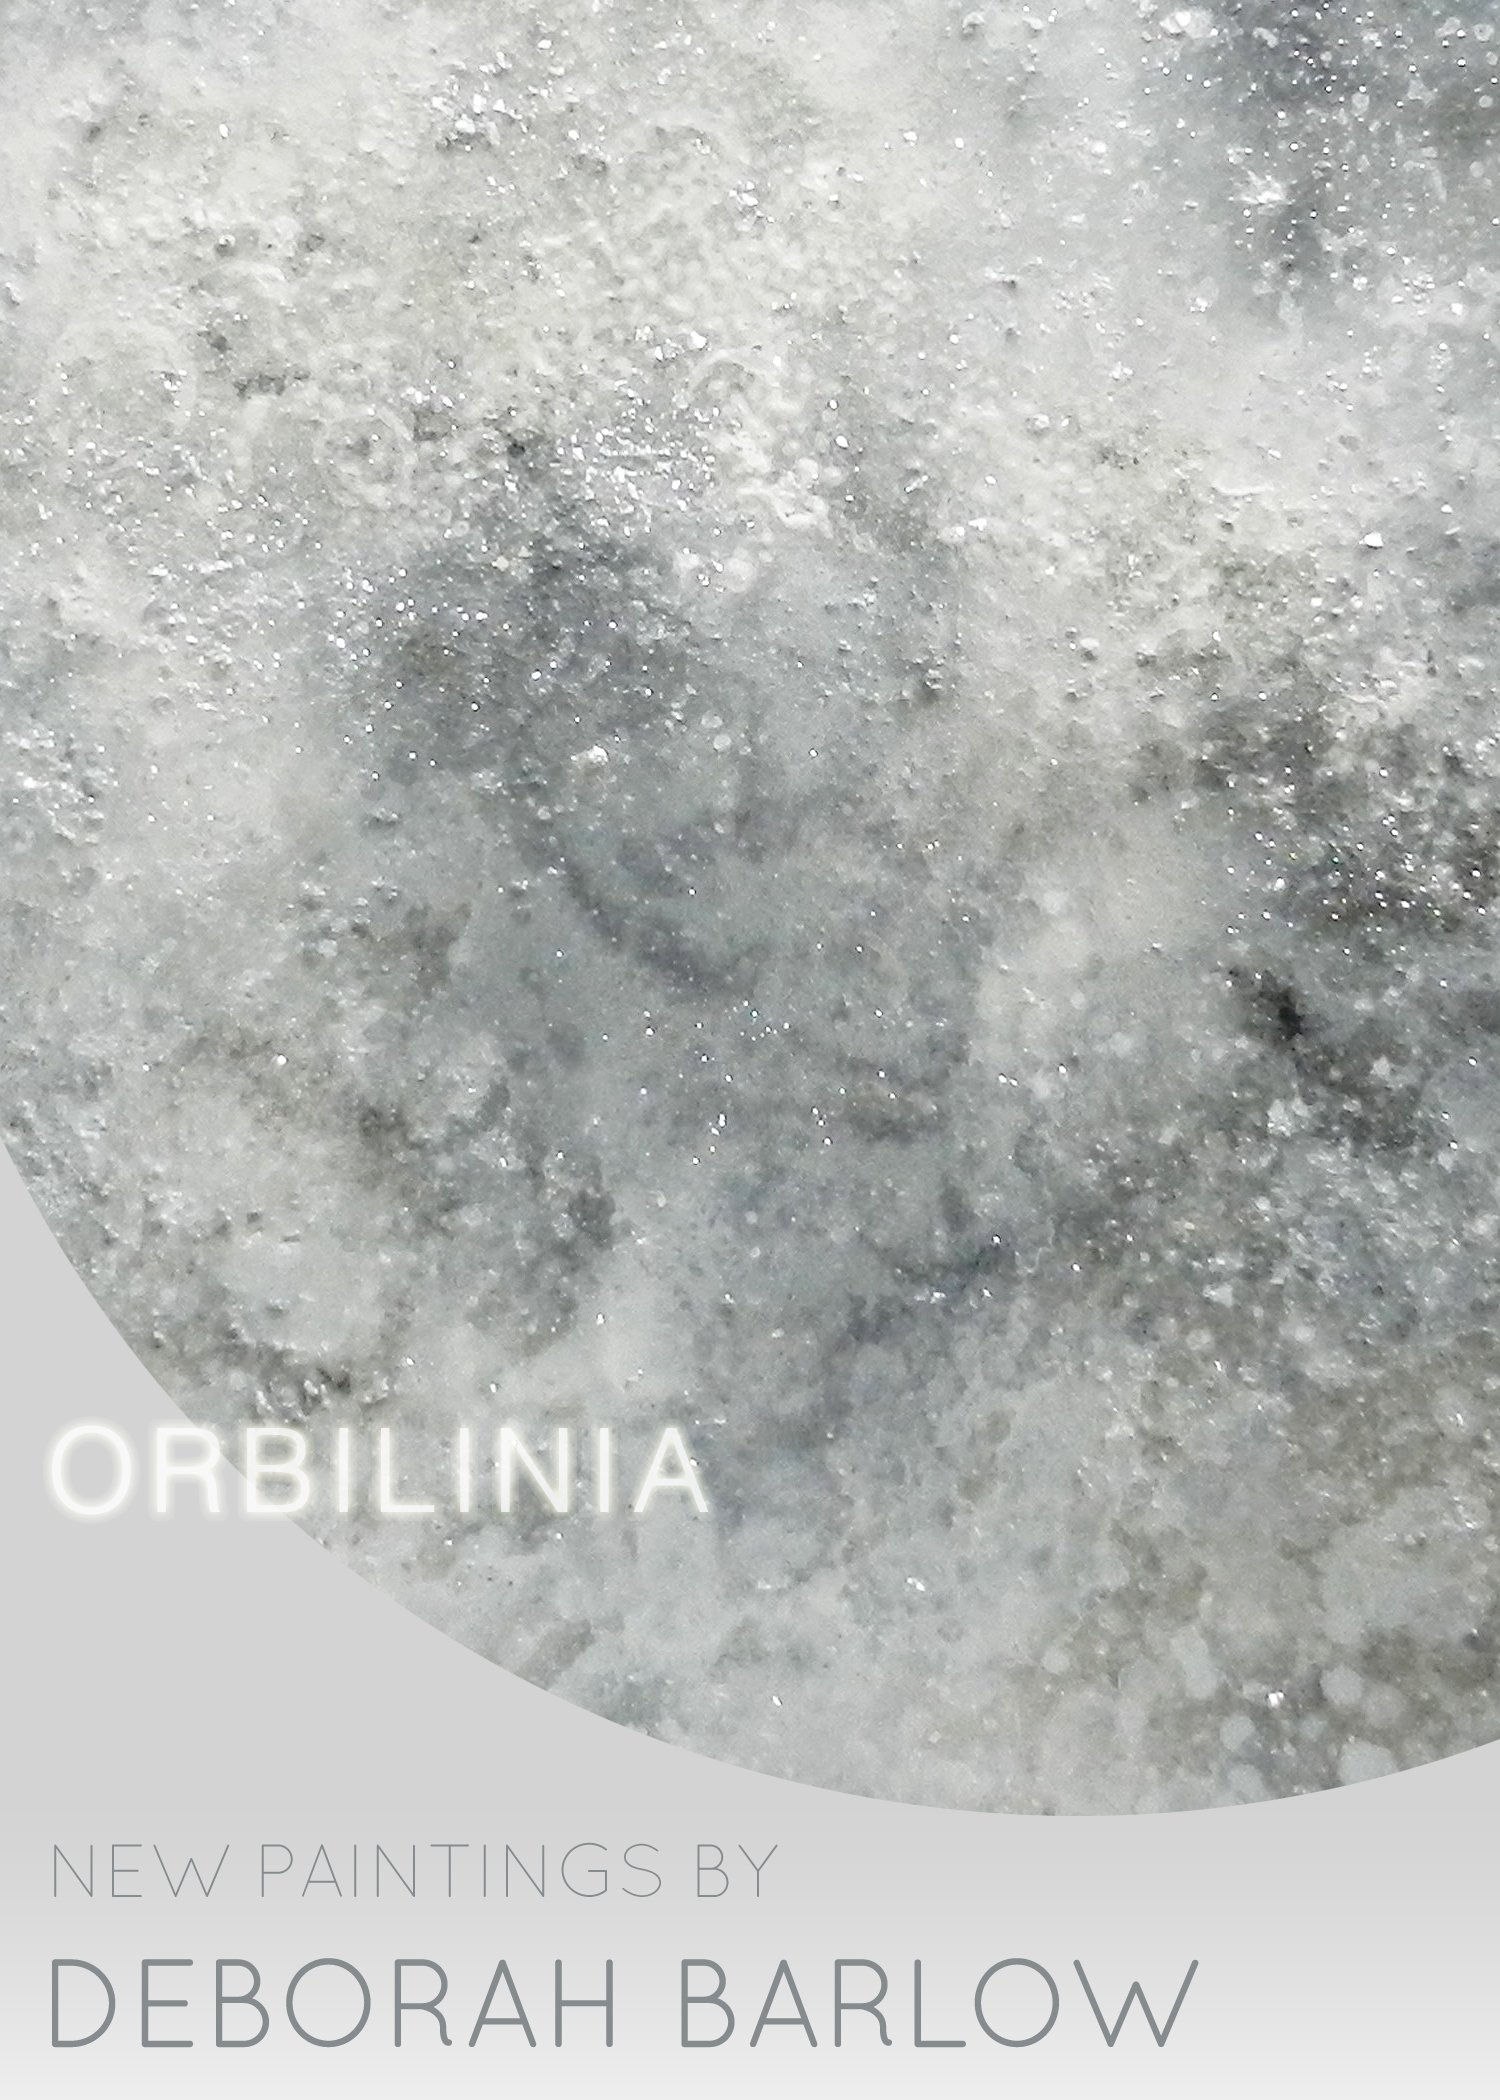 Orbilinia_300 copy